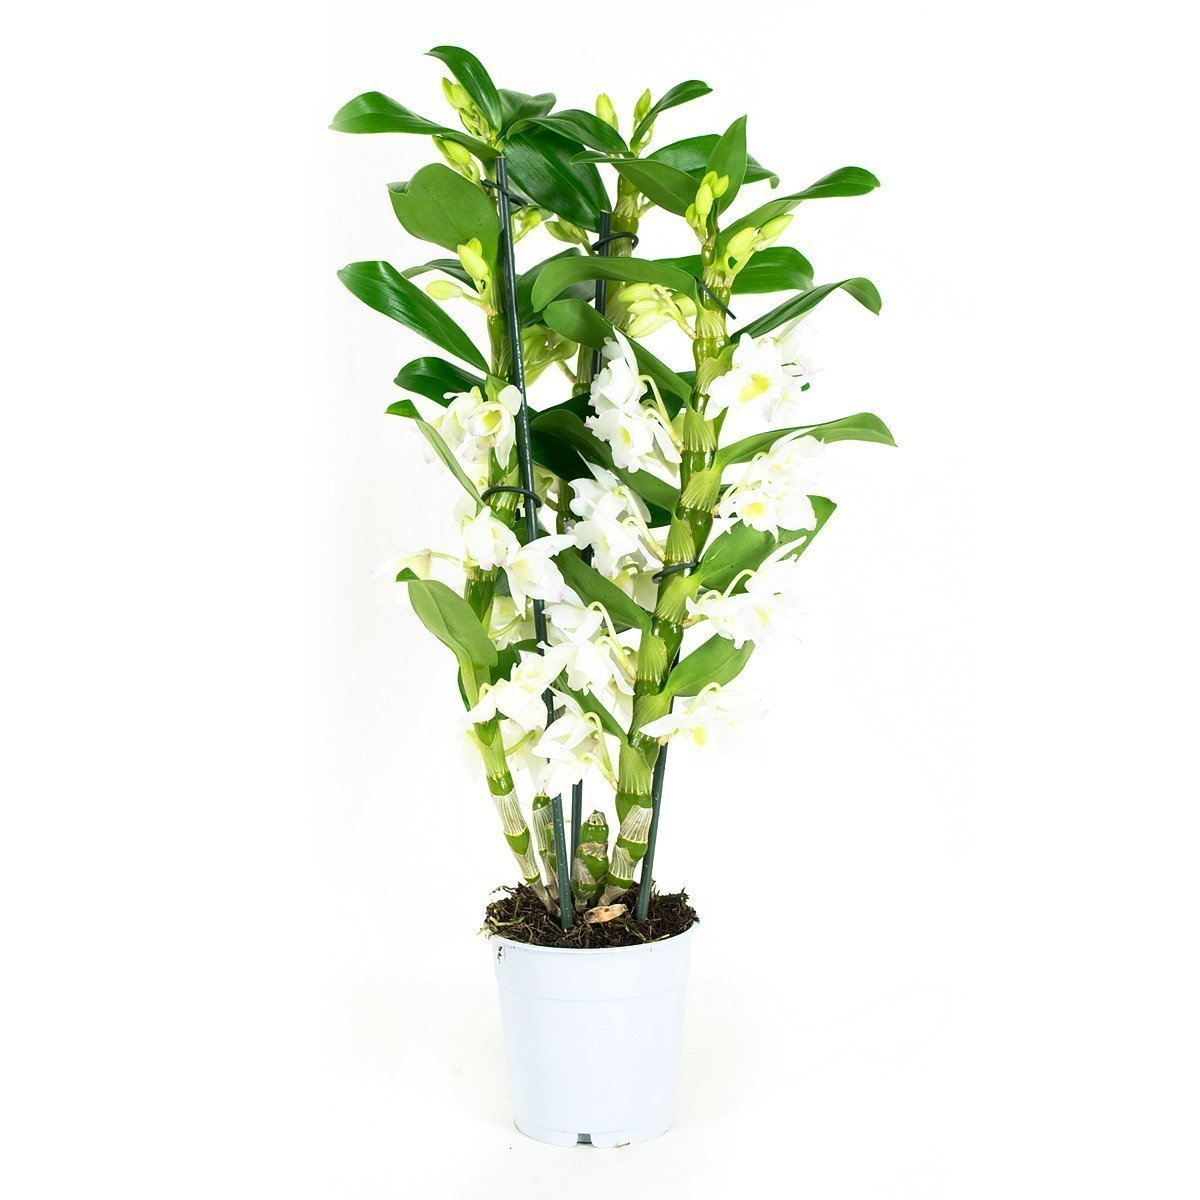 Orchid – Bamboo Orchid – Height: 50 cm, 3 stems, white flowers